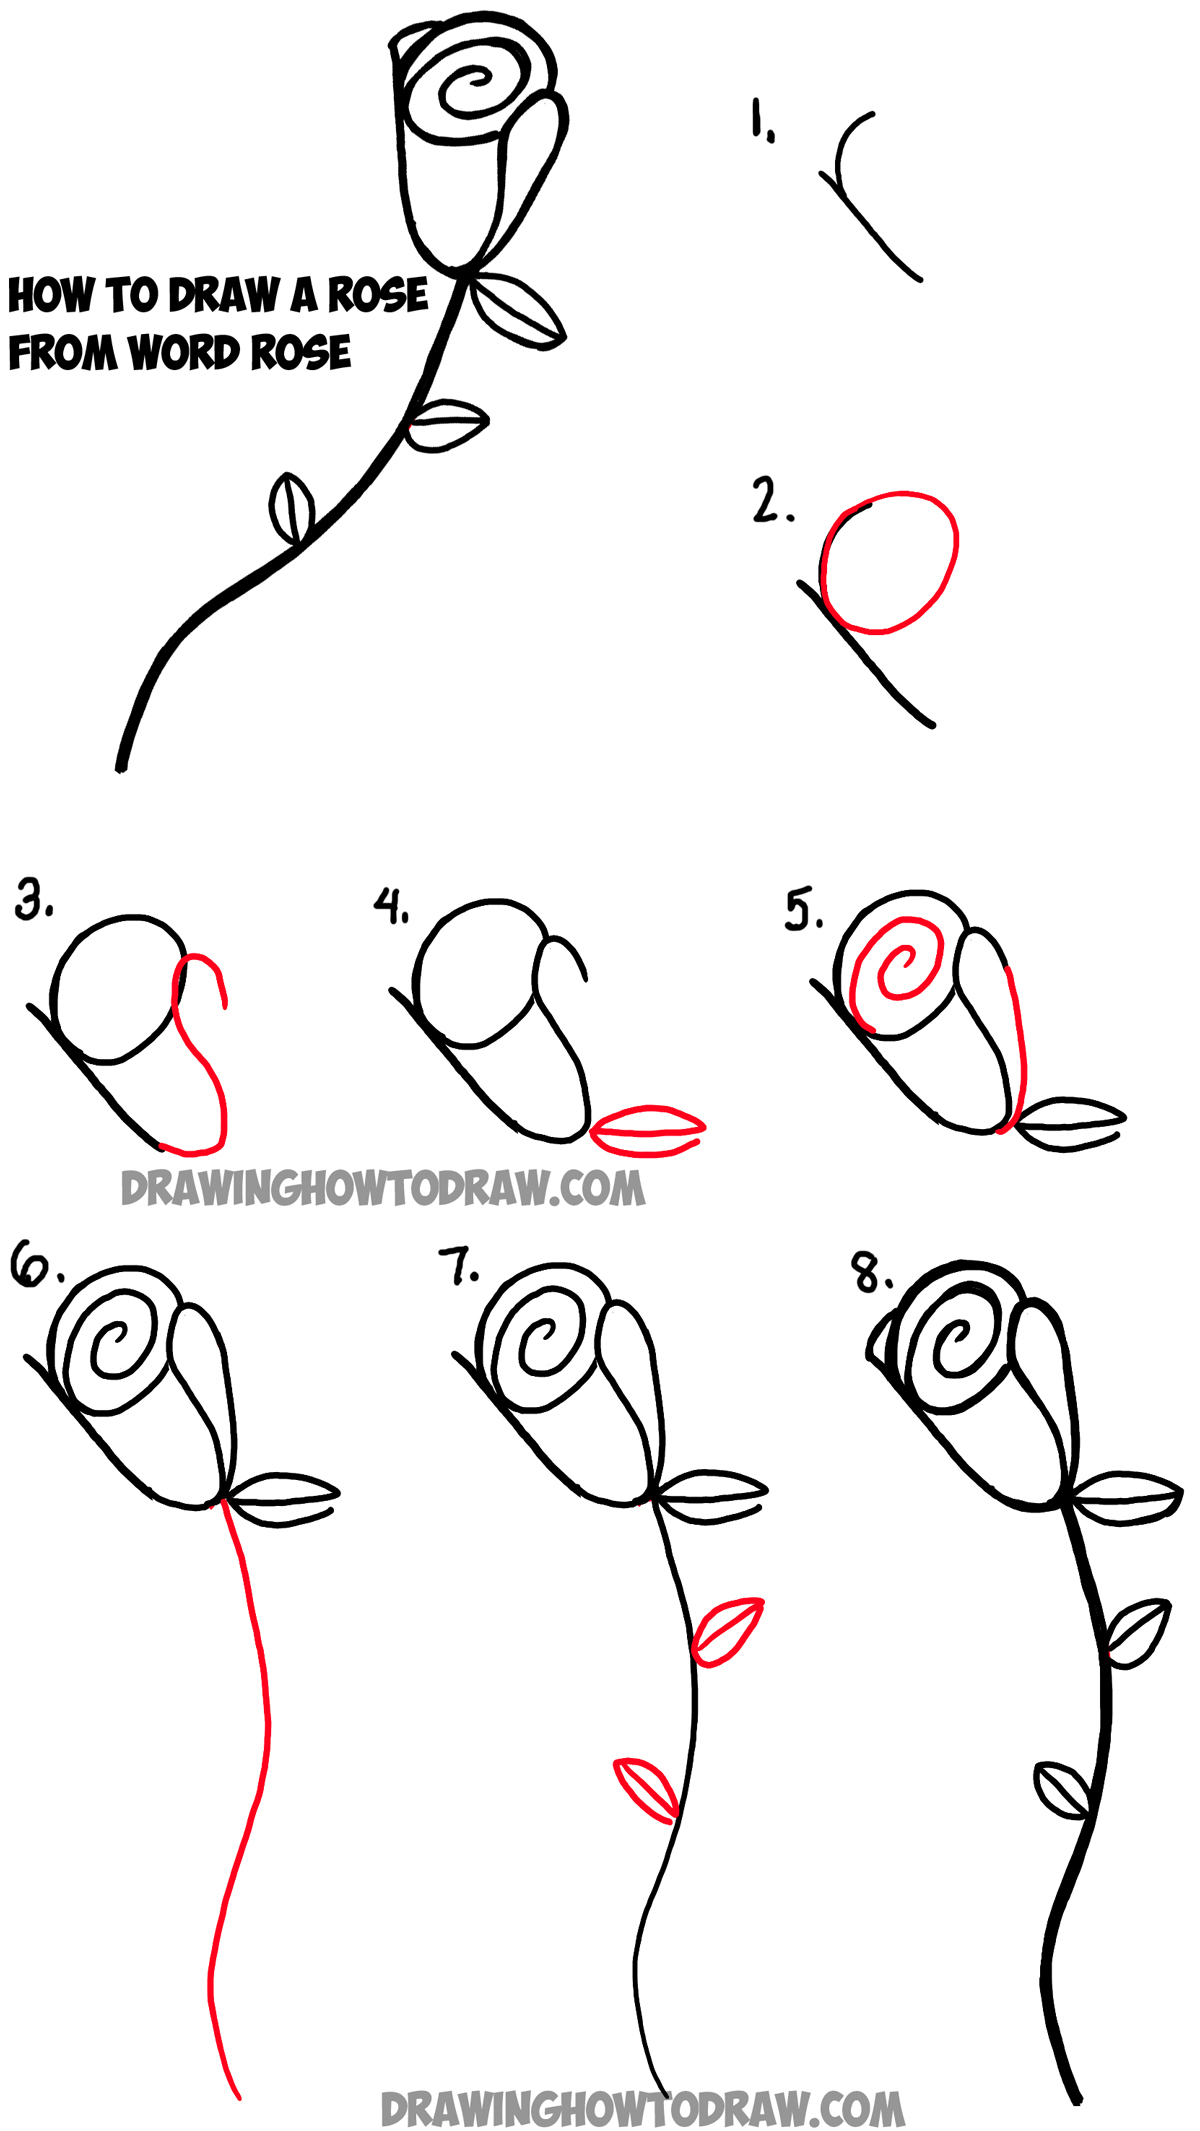 How To Draw Roses From The Word Rose With Easy Step By Step Tutorial How To